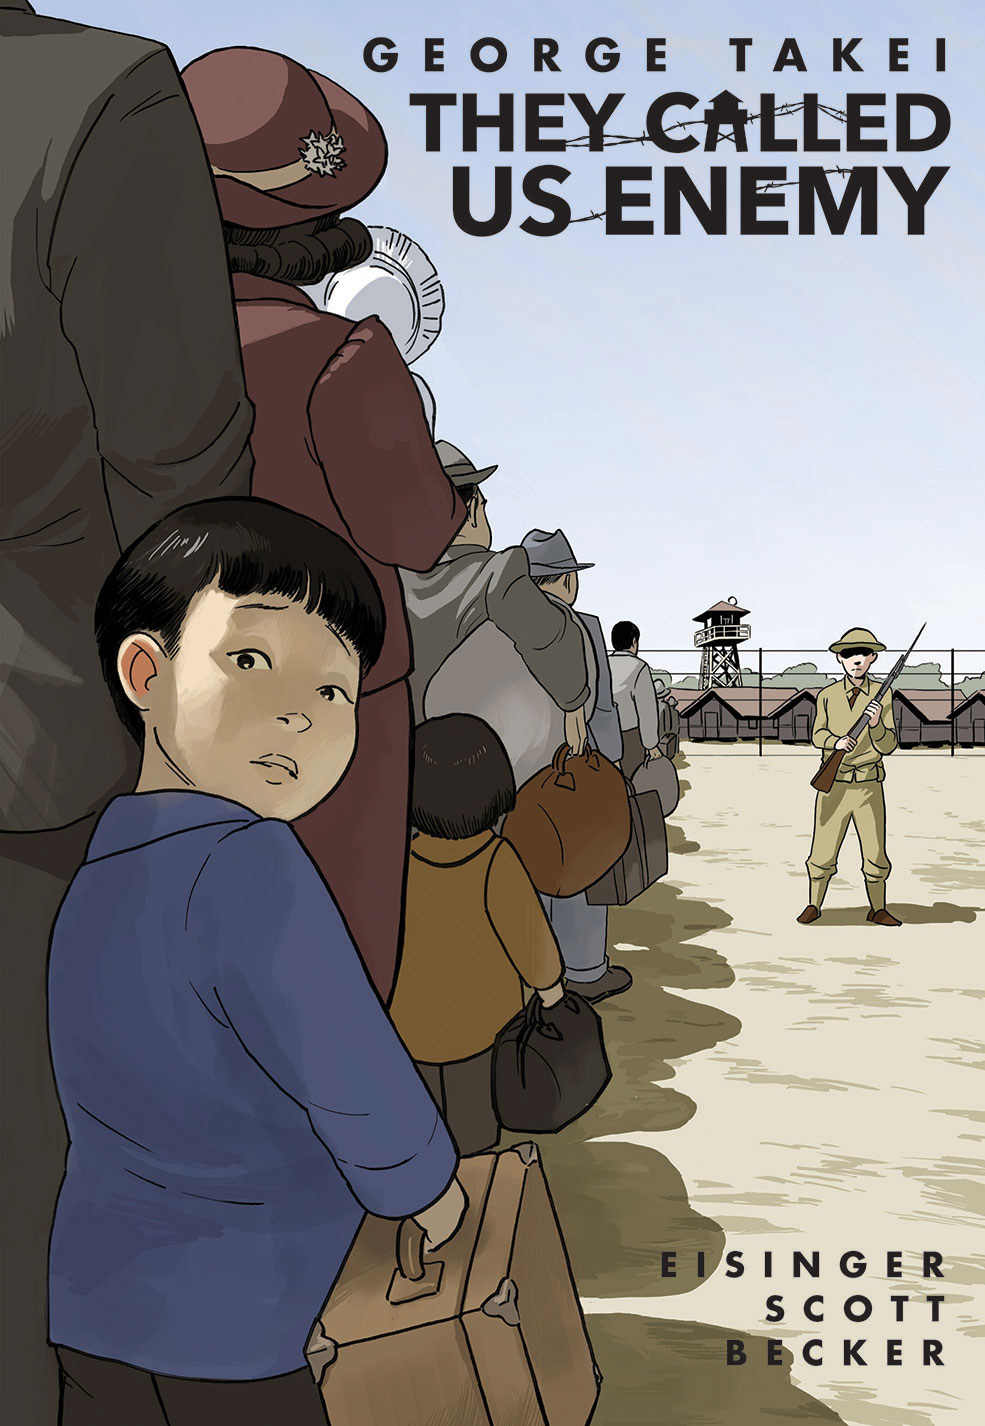 'They Called Us Enemy' by George Takei, Justin Eisinger, Steven Scott, and Harmony Becker